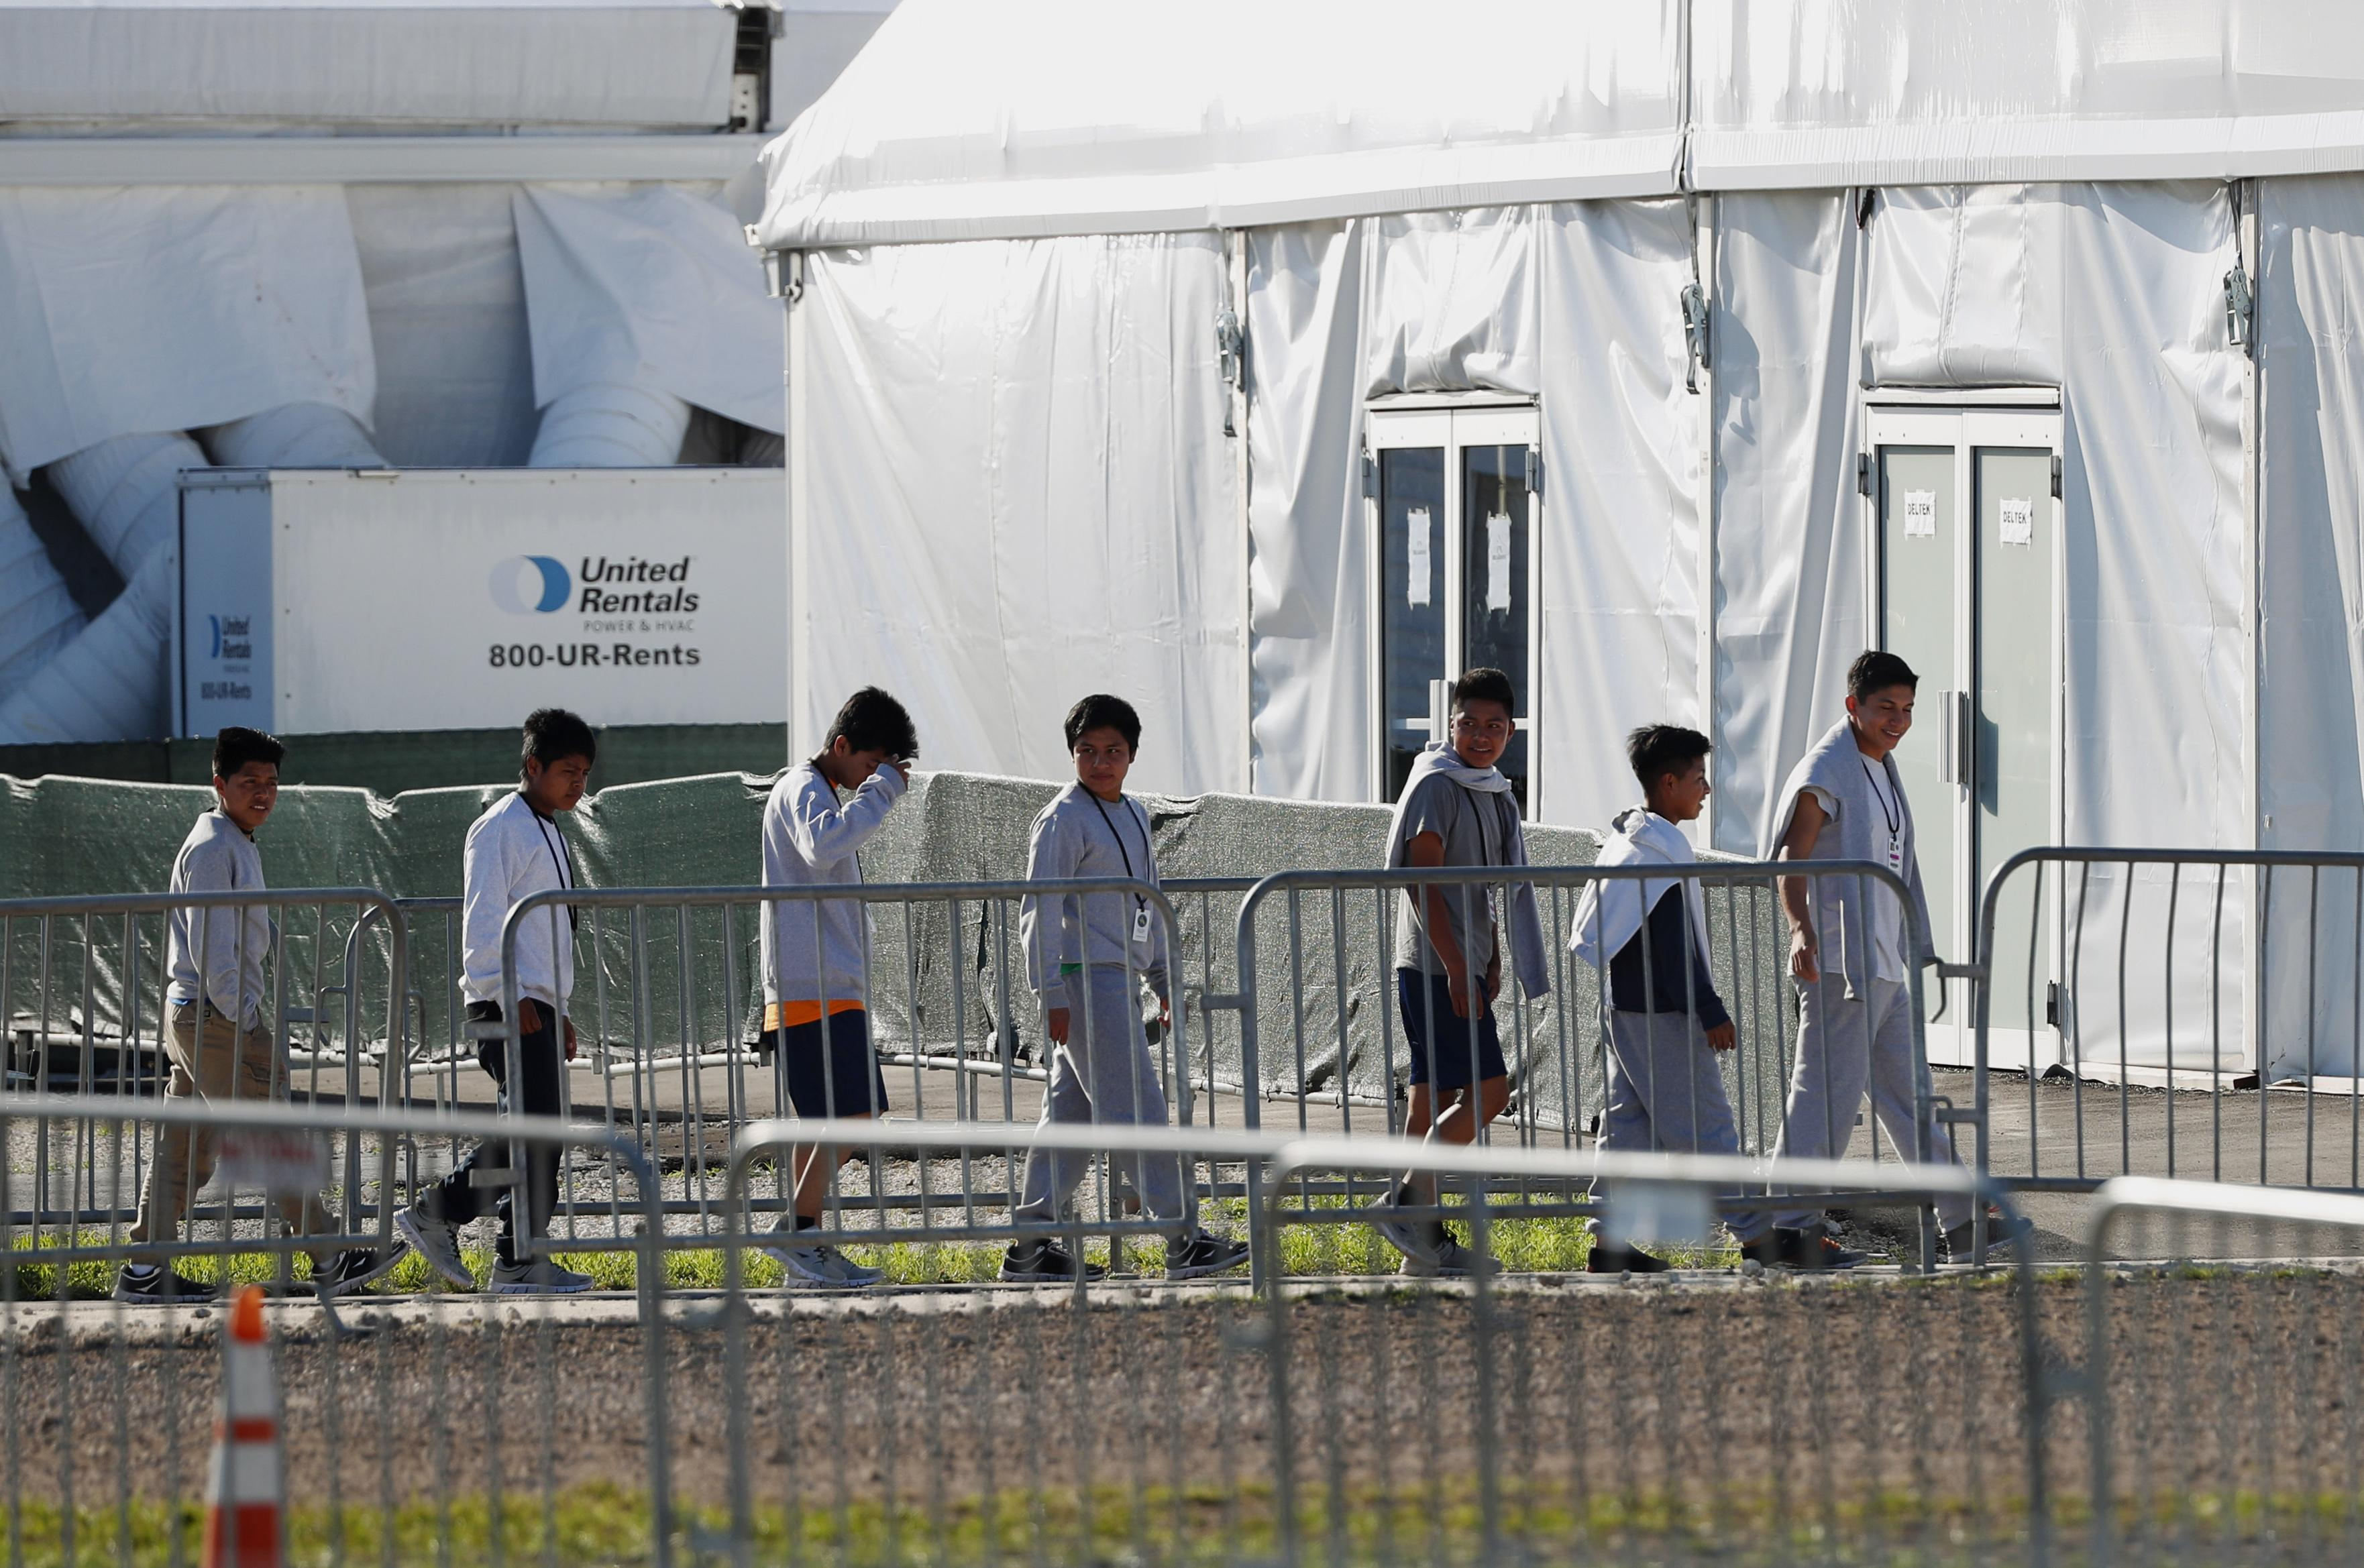 Attorney appalled by visit to 'filthy' migrant detention facilities: 'Children are literally dying'